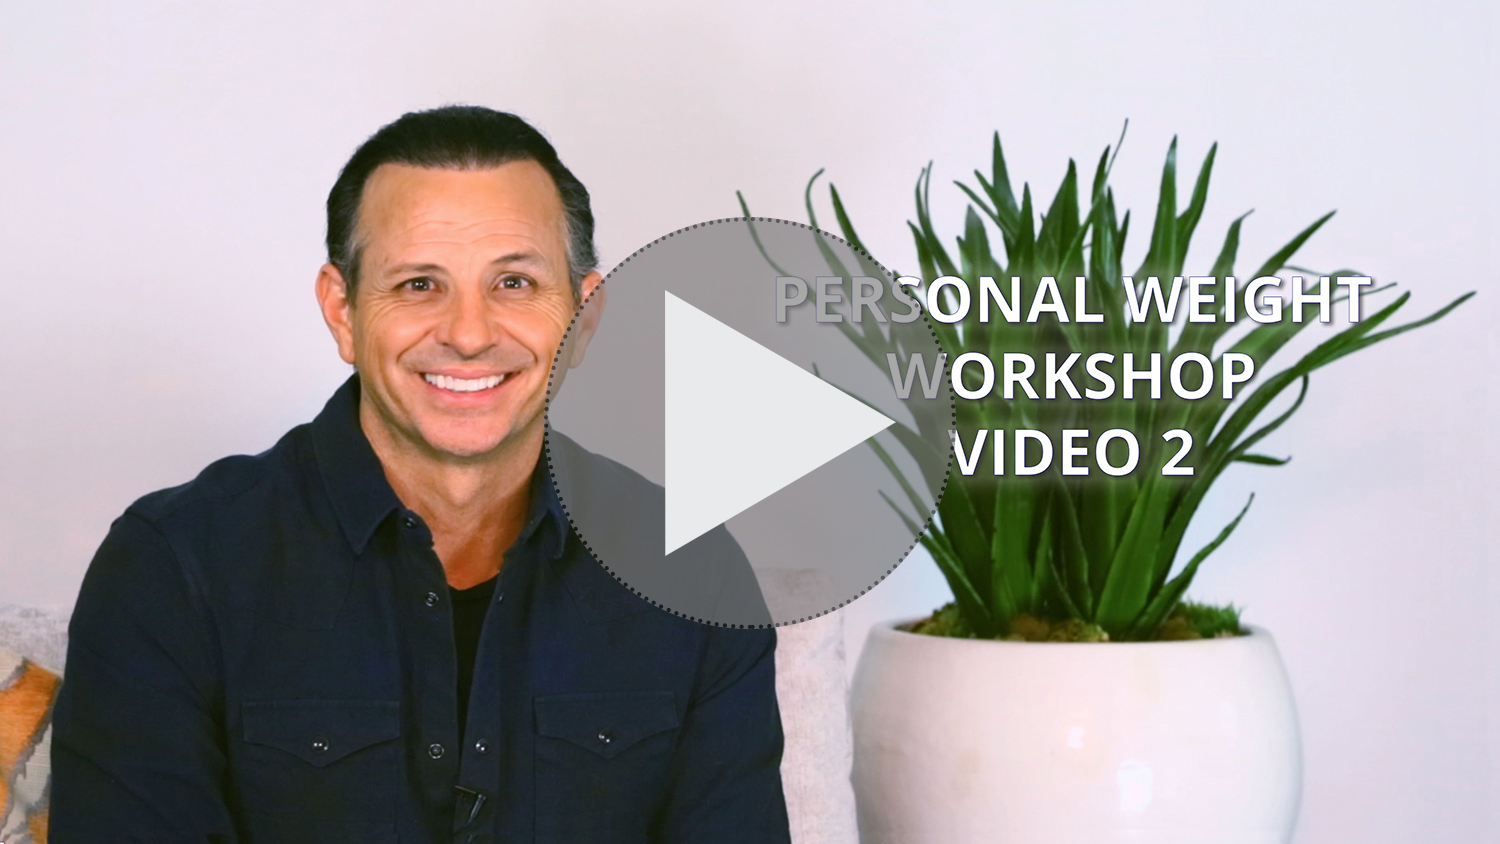 FREE Personal Weight Workshop Video 2 by Travis Fox